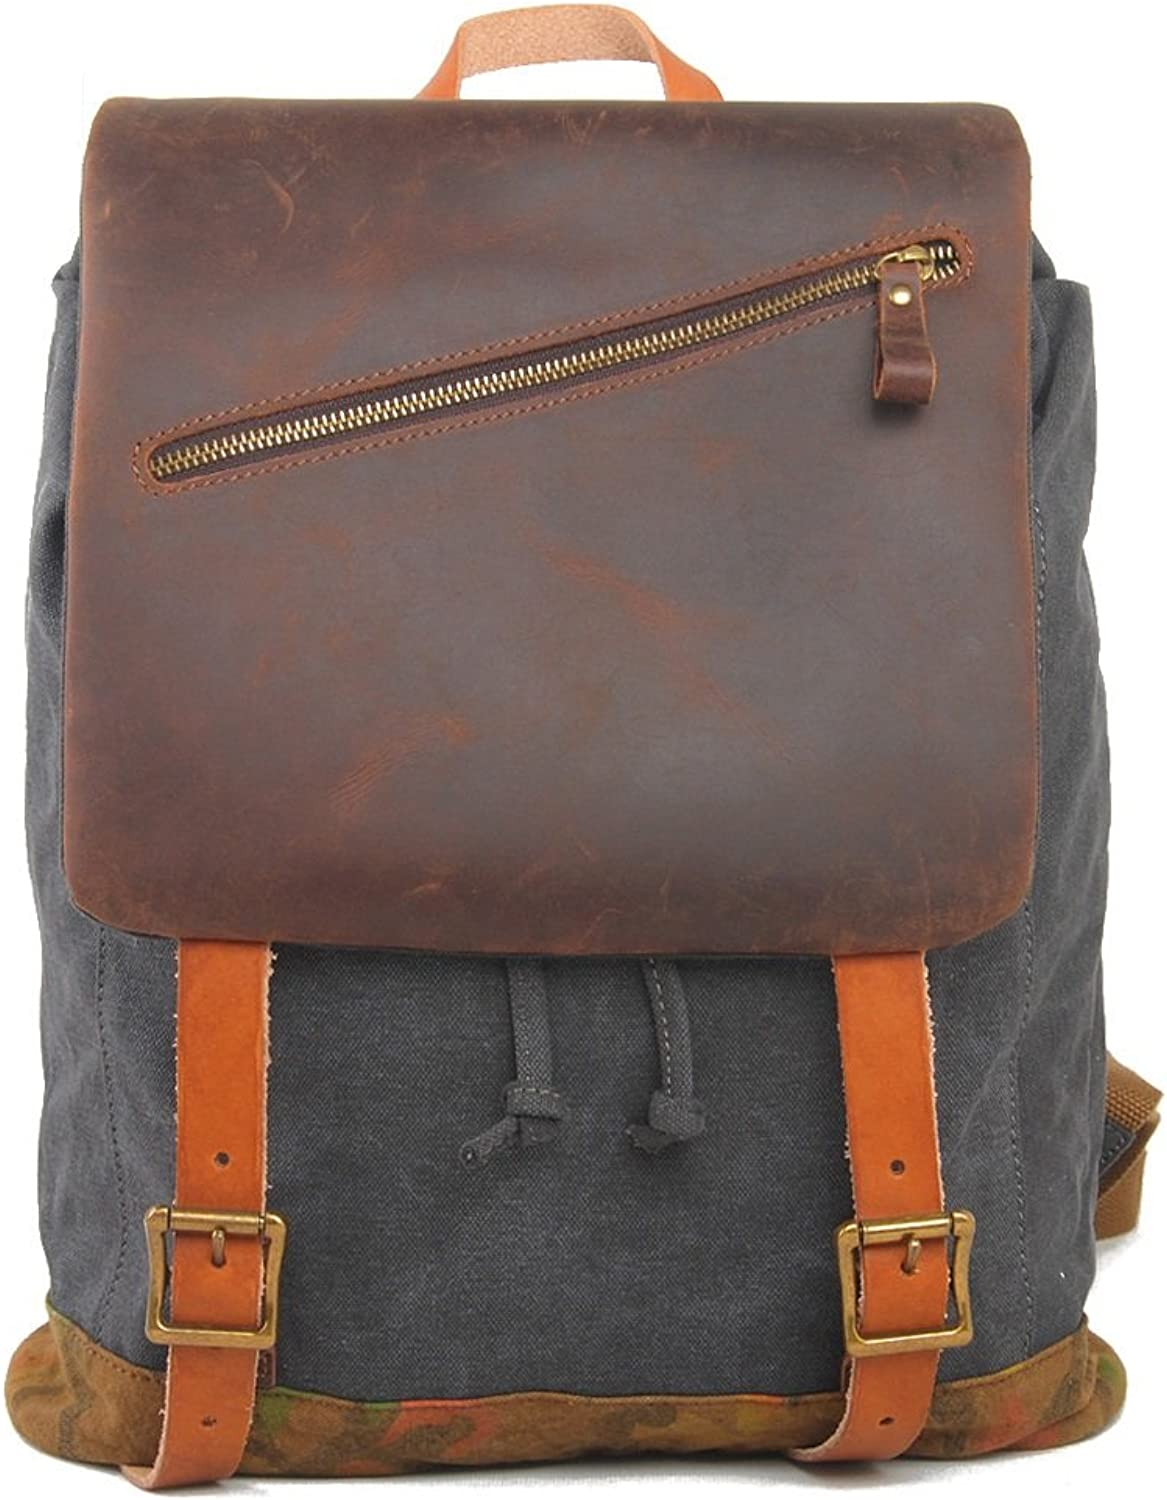 Backpack Canvas Genuine Leather Flap Contrast color for Women Men